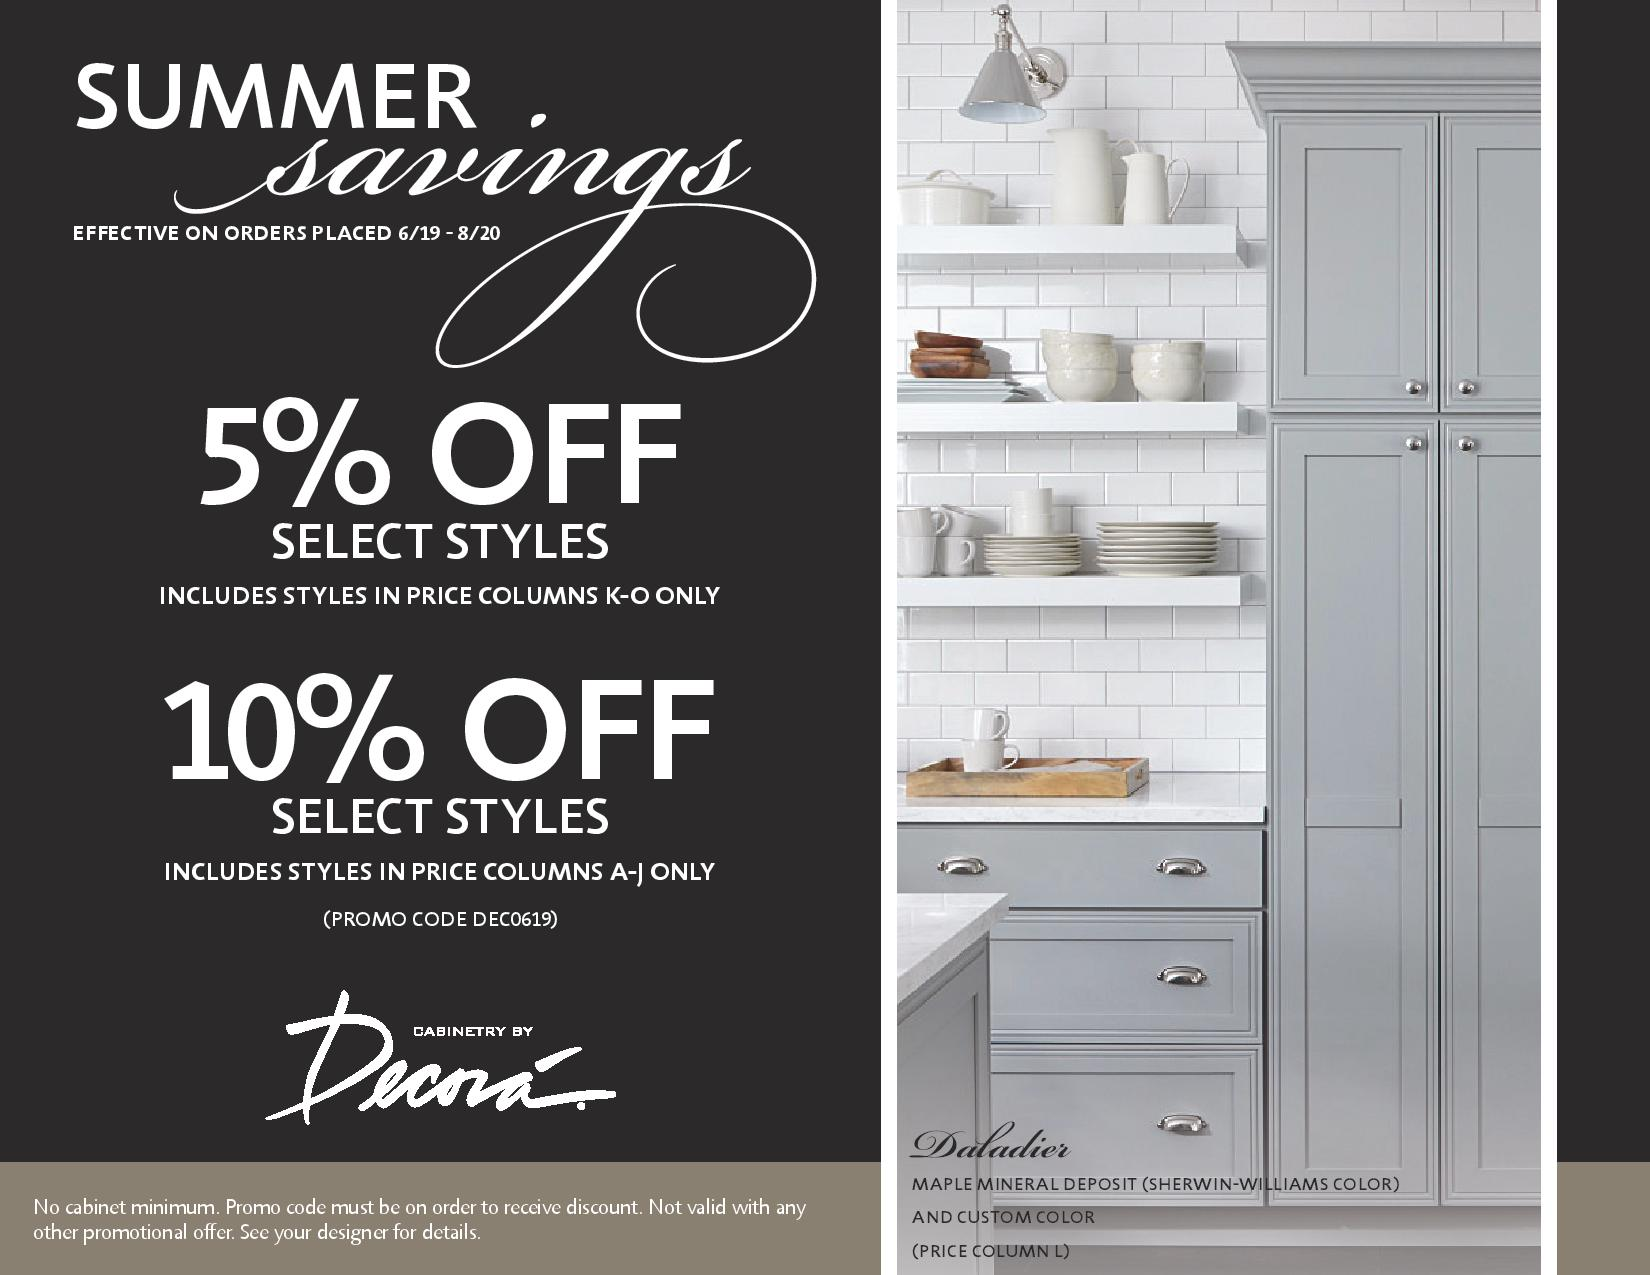 Decora Summer Off Promotion - 06_19_2017 MidwestWest-page-001